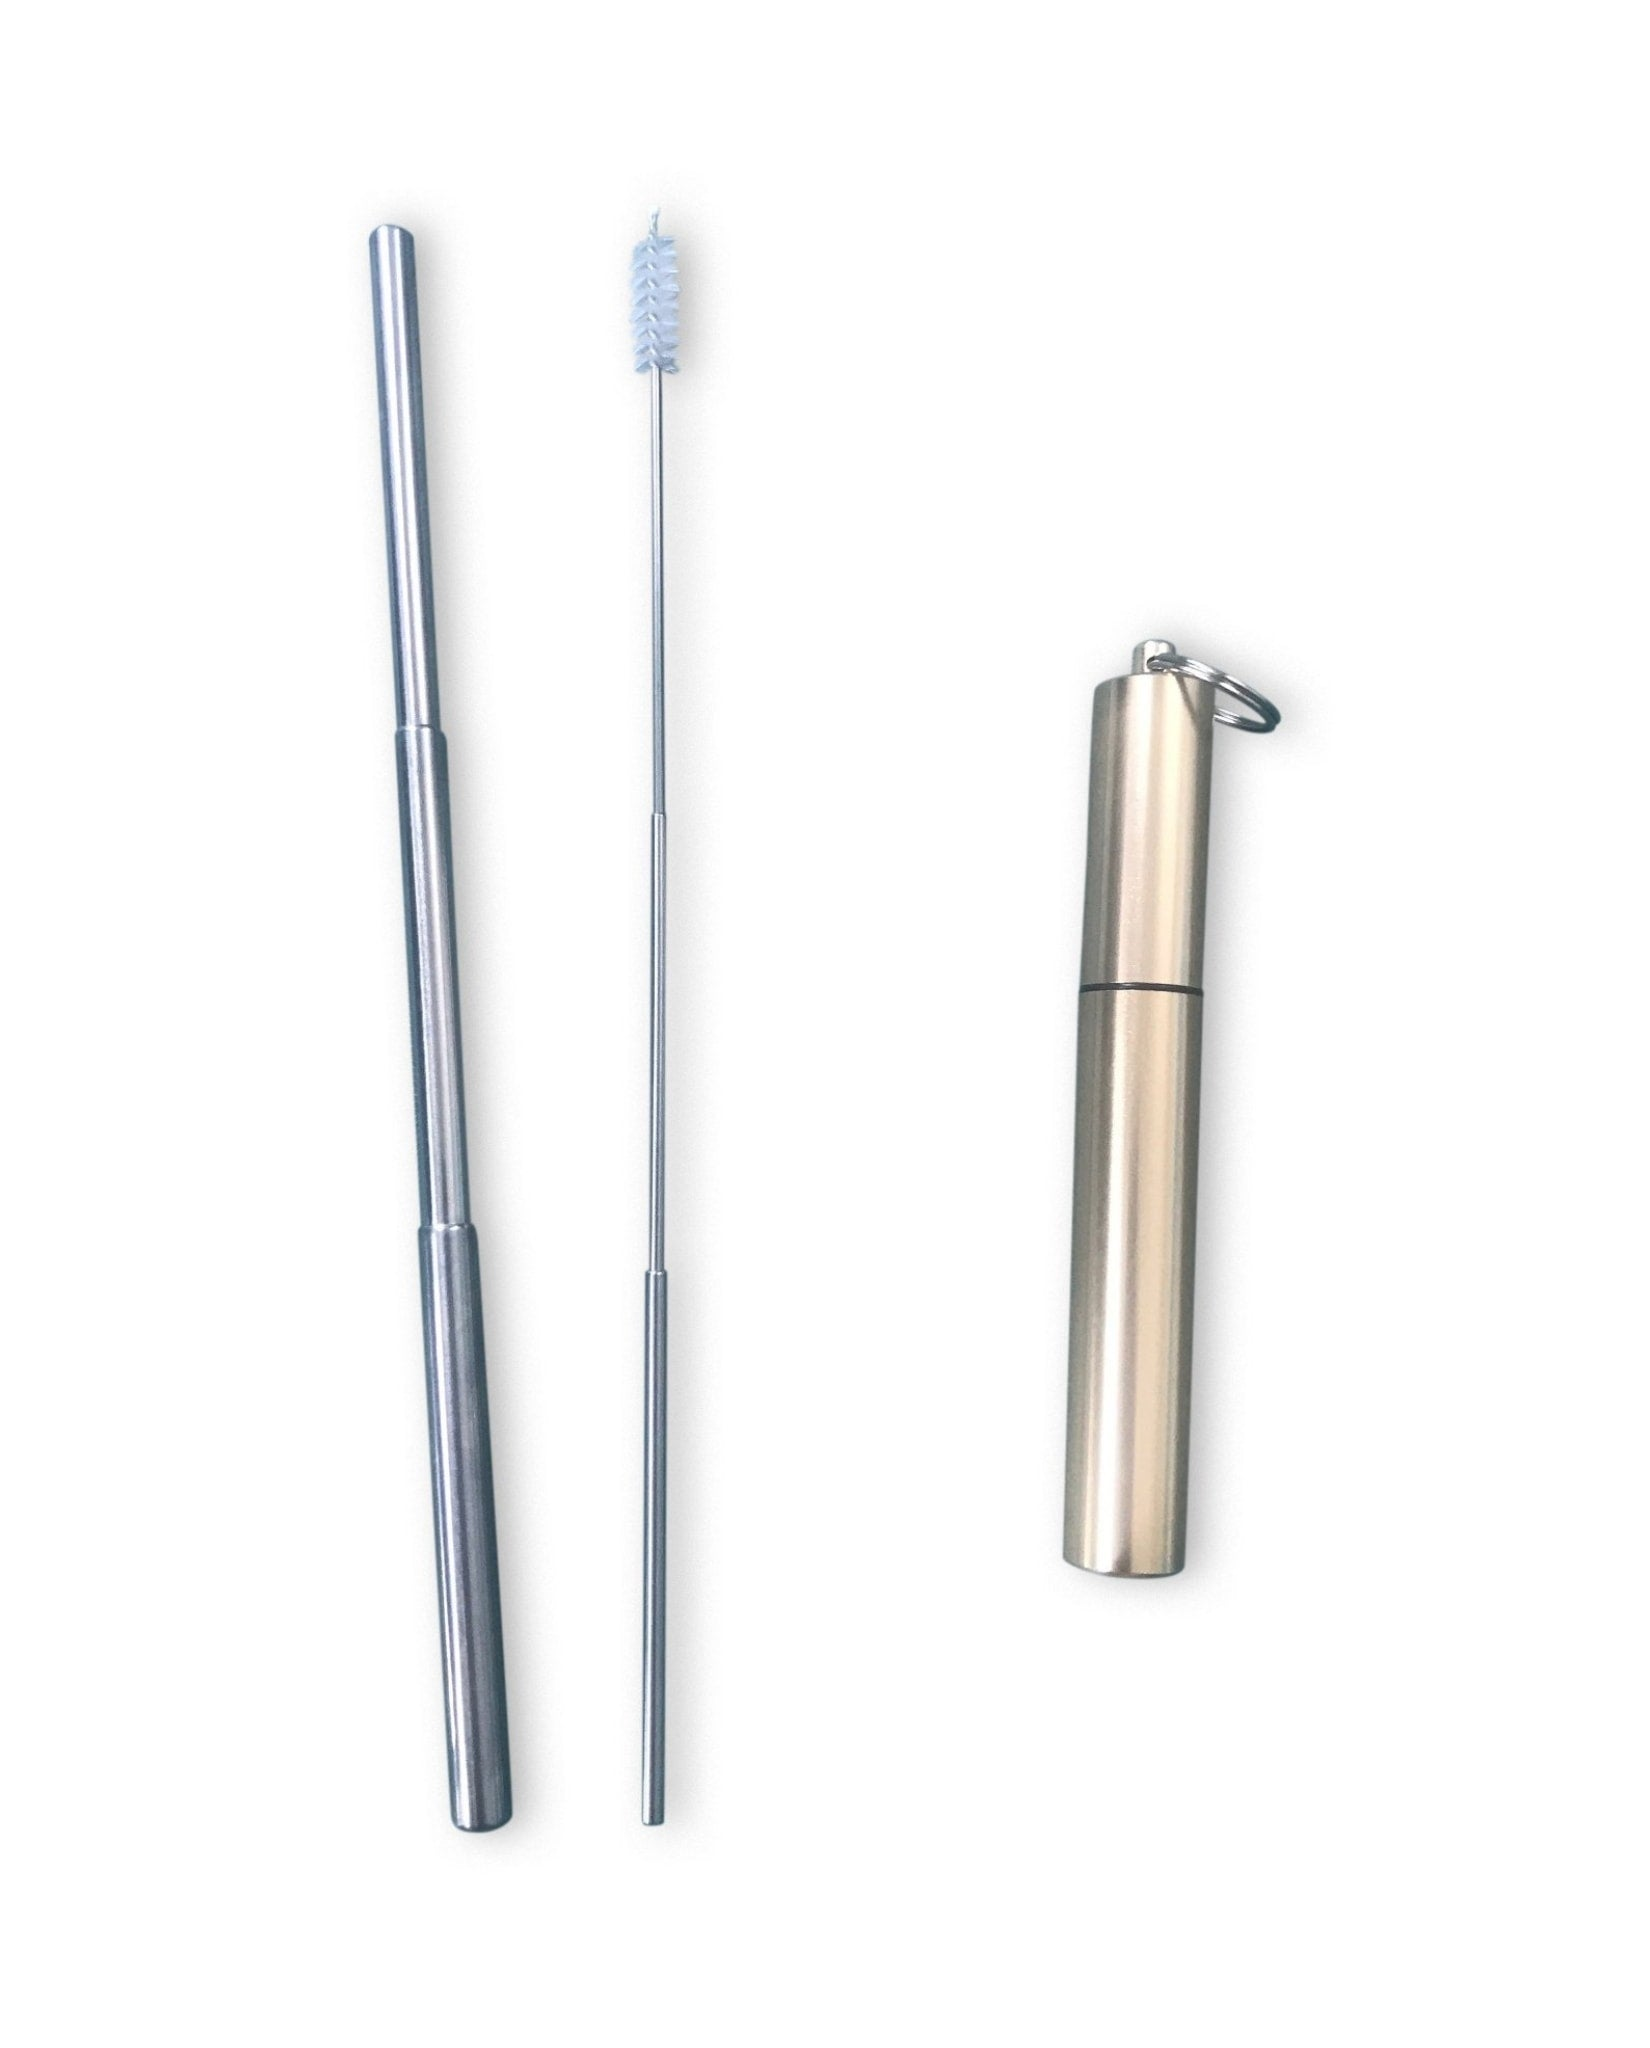 Telescopic S/S Straw + Cleaning Brush Kit Gold